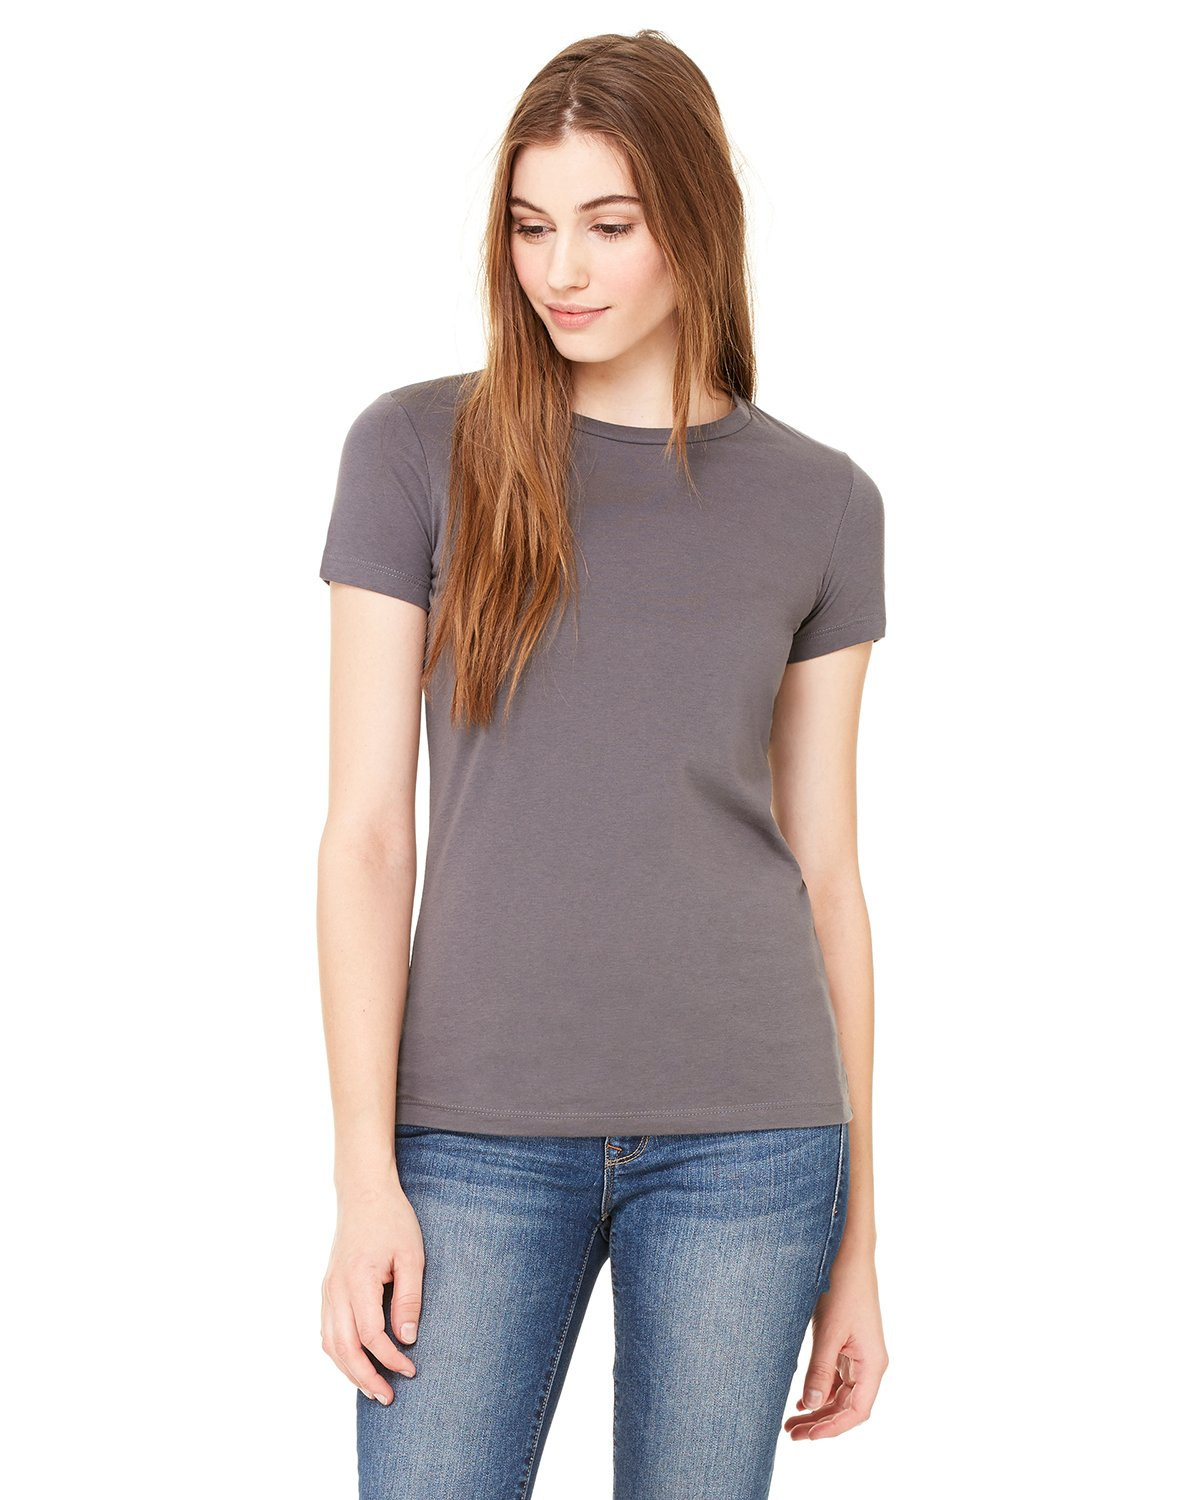 Bella + Canvas - 6650 - Ladies' Poly-Cotton Short-Sleeve T-Shirt